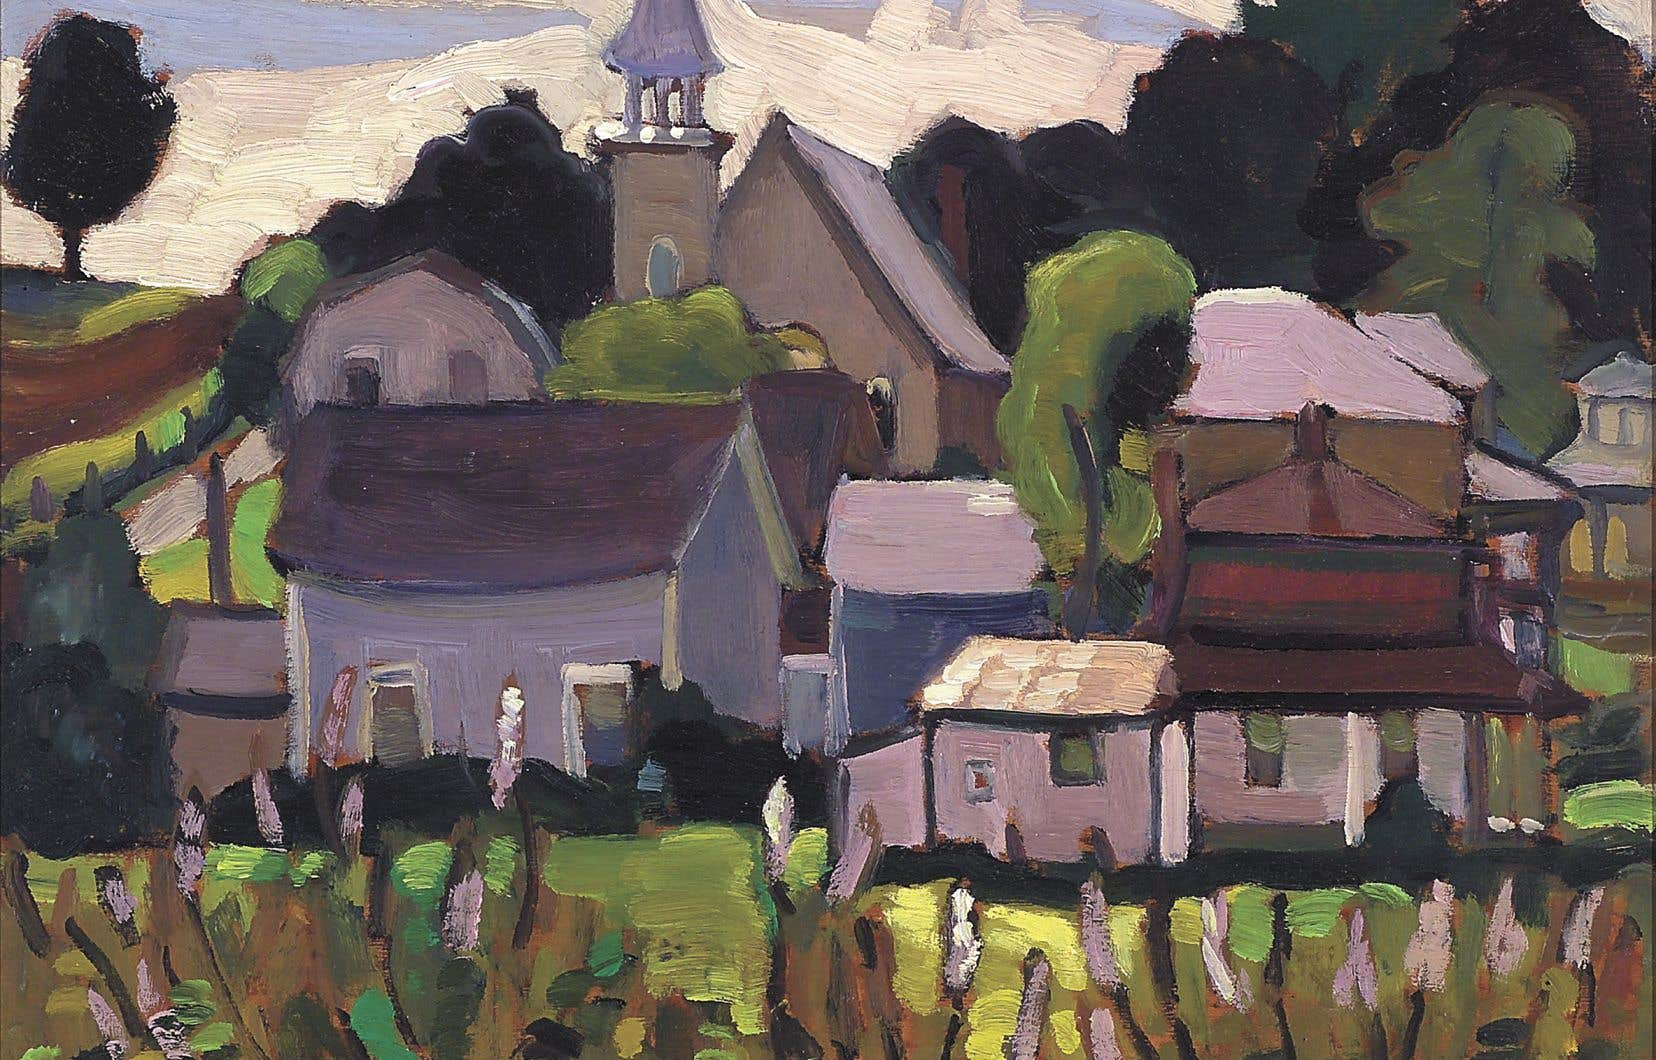 «Foster Village», de l'artiste Norah Collyer Foster, fait partie de la collection permanente du Musée Bruck.